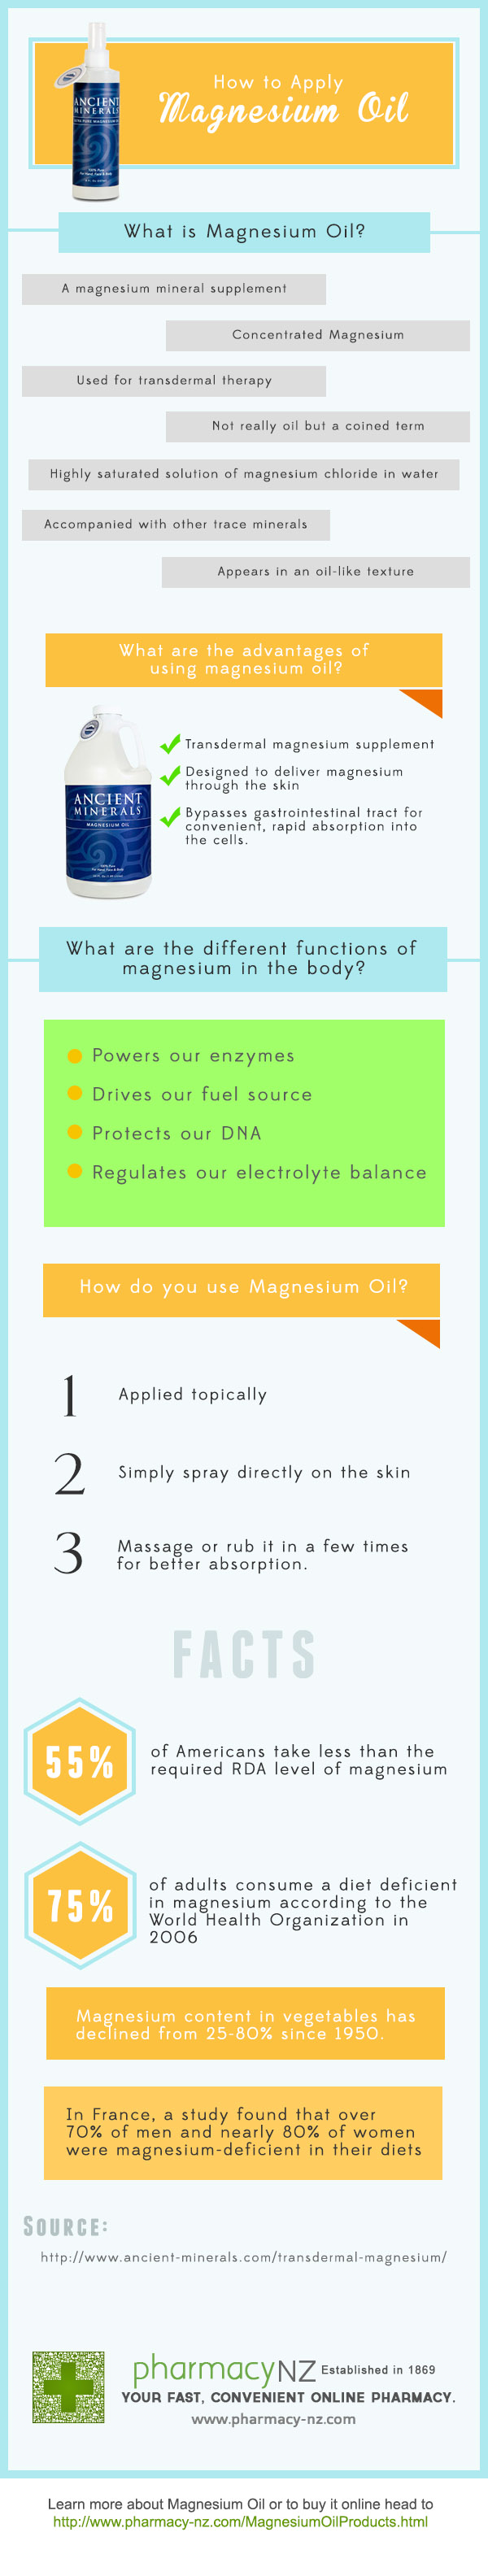 How to Apply Magnesium Oil